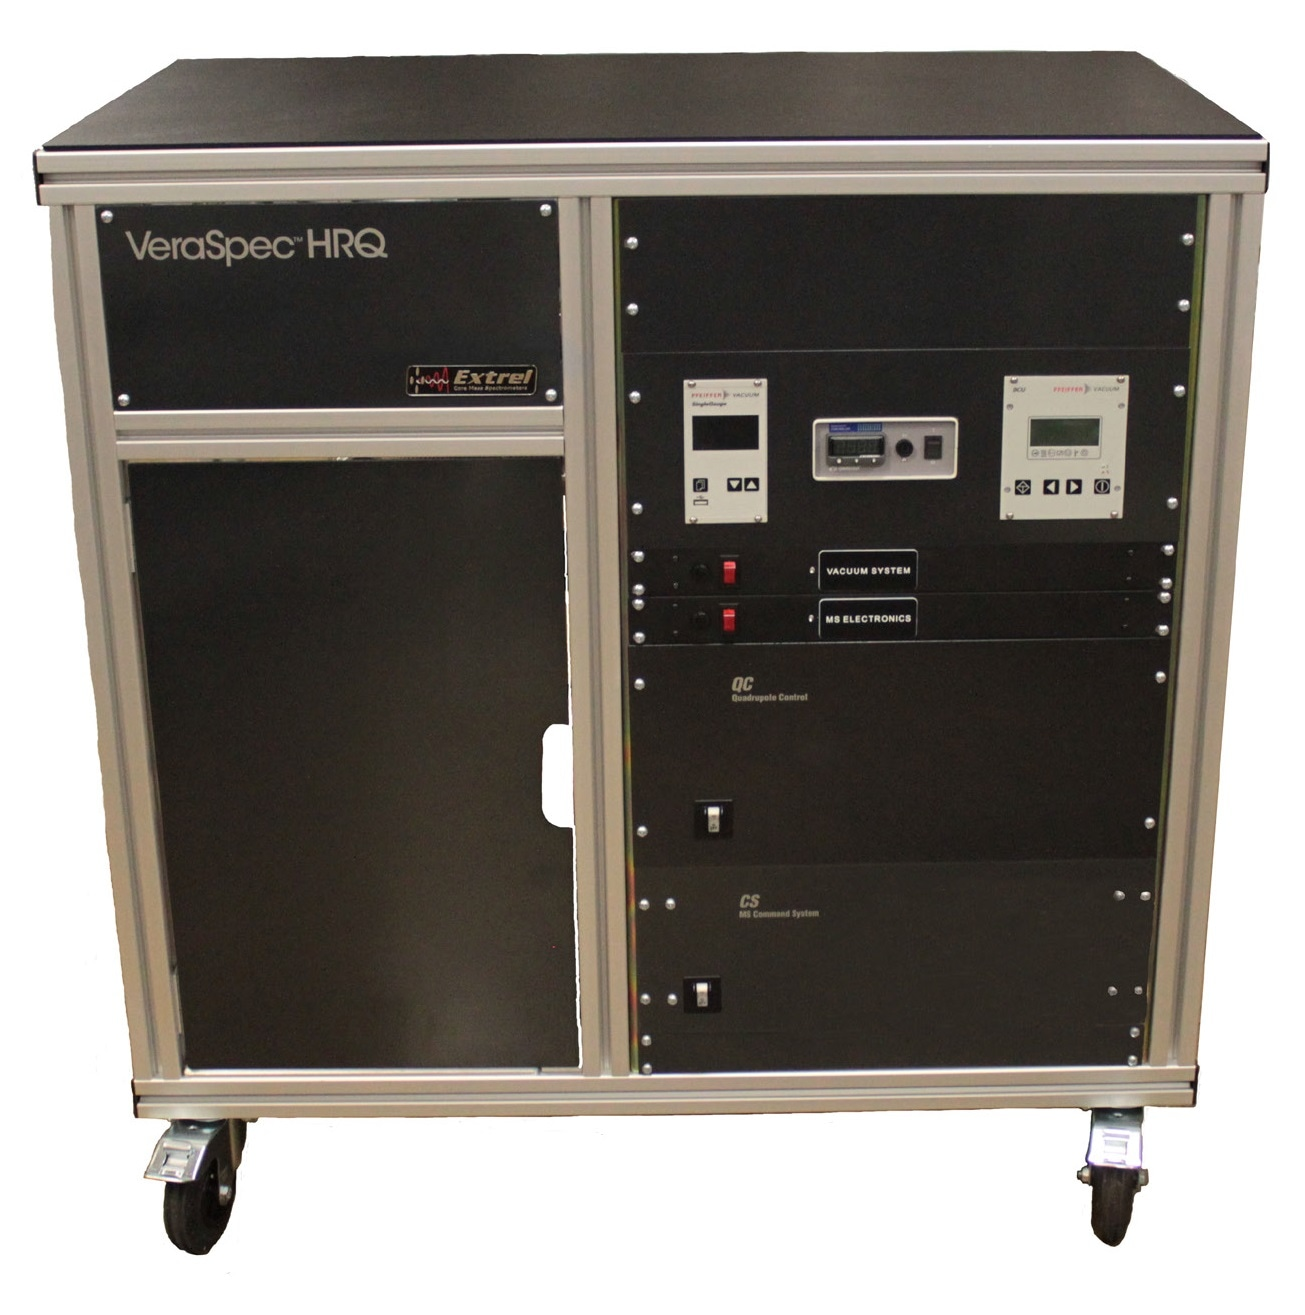 VeraSpec HRQ A high resolution quadrupole mass spectrometer for the nuclear, gas production and fuel cell industries.